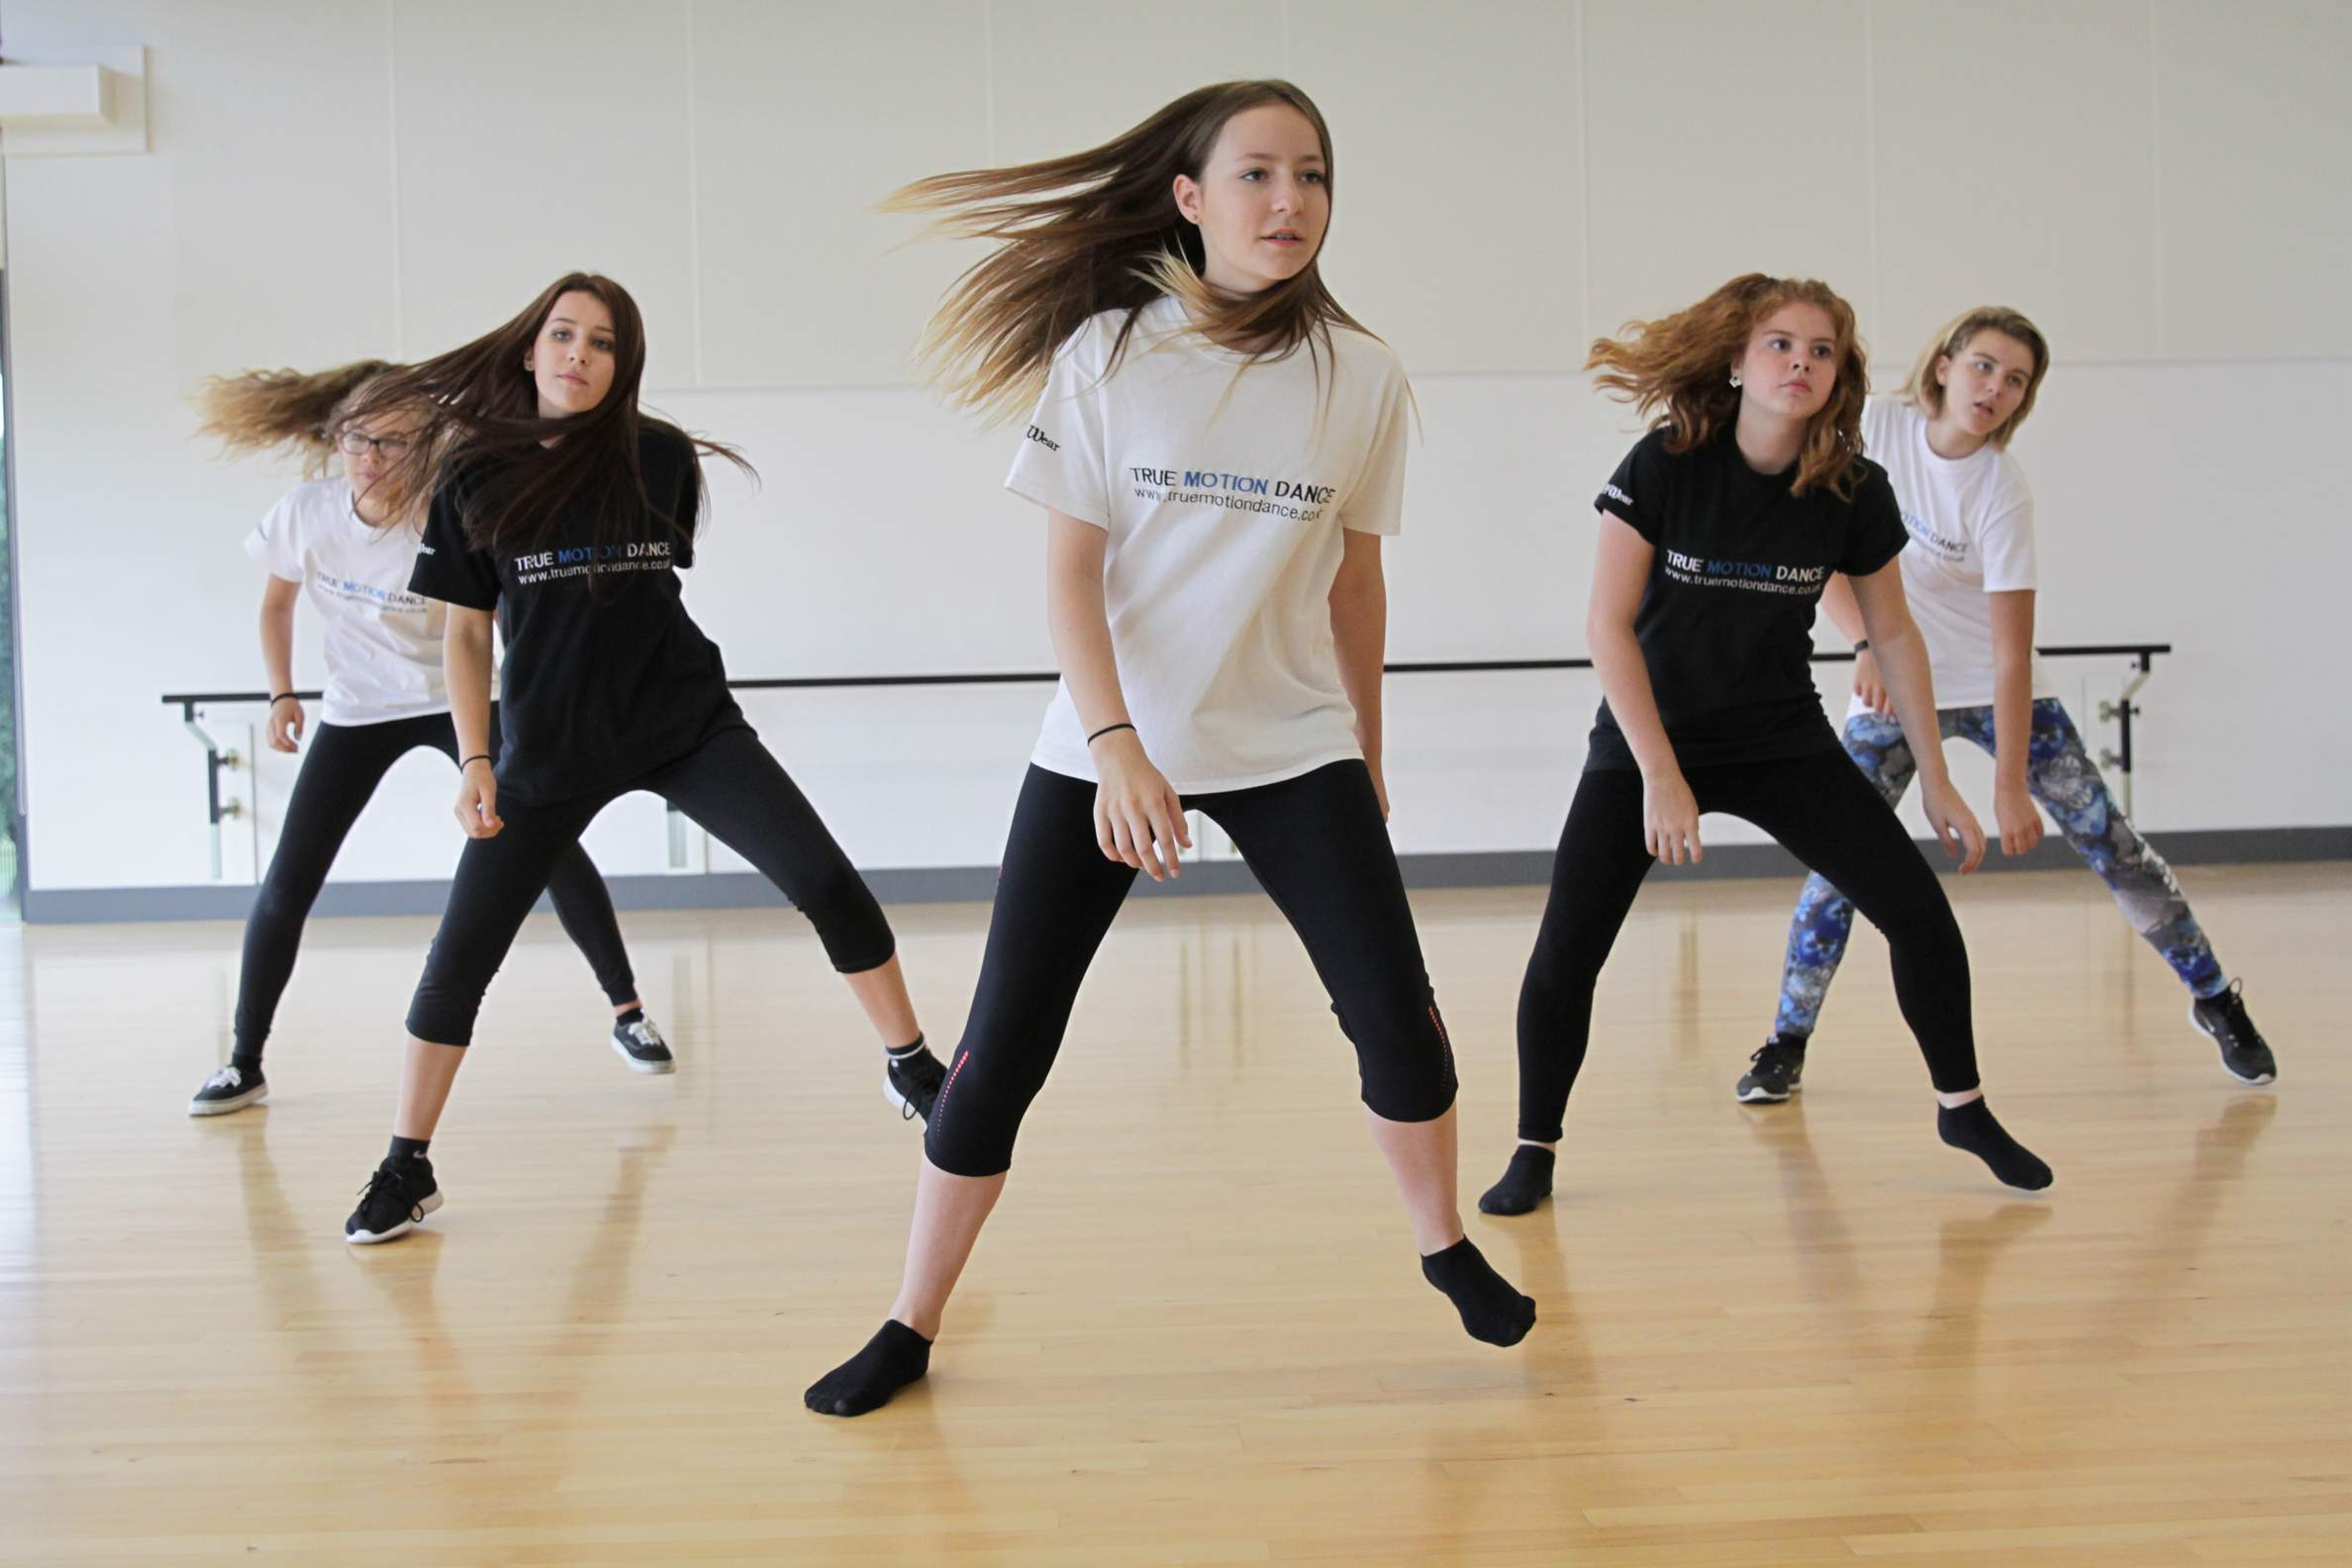 Girls dancing in class as part of Elite Youth Dance Company